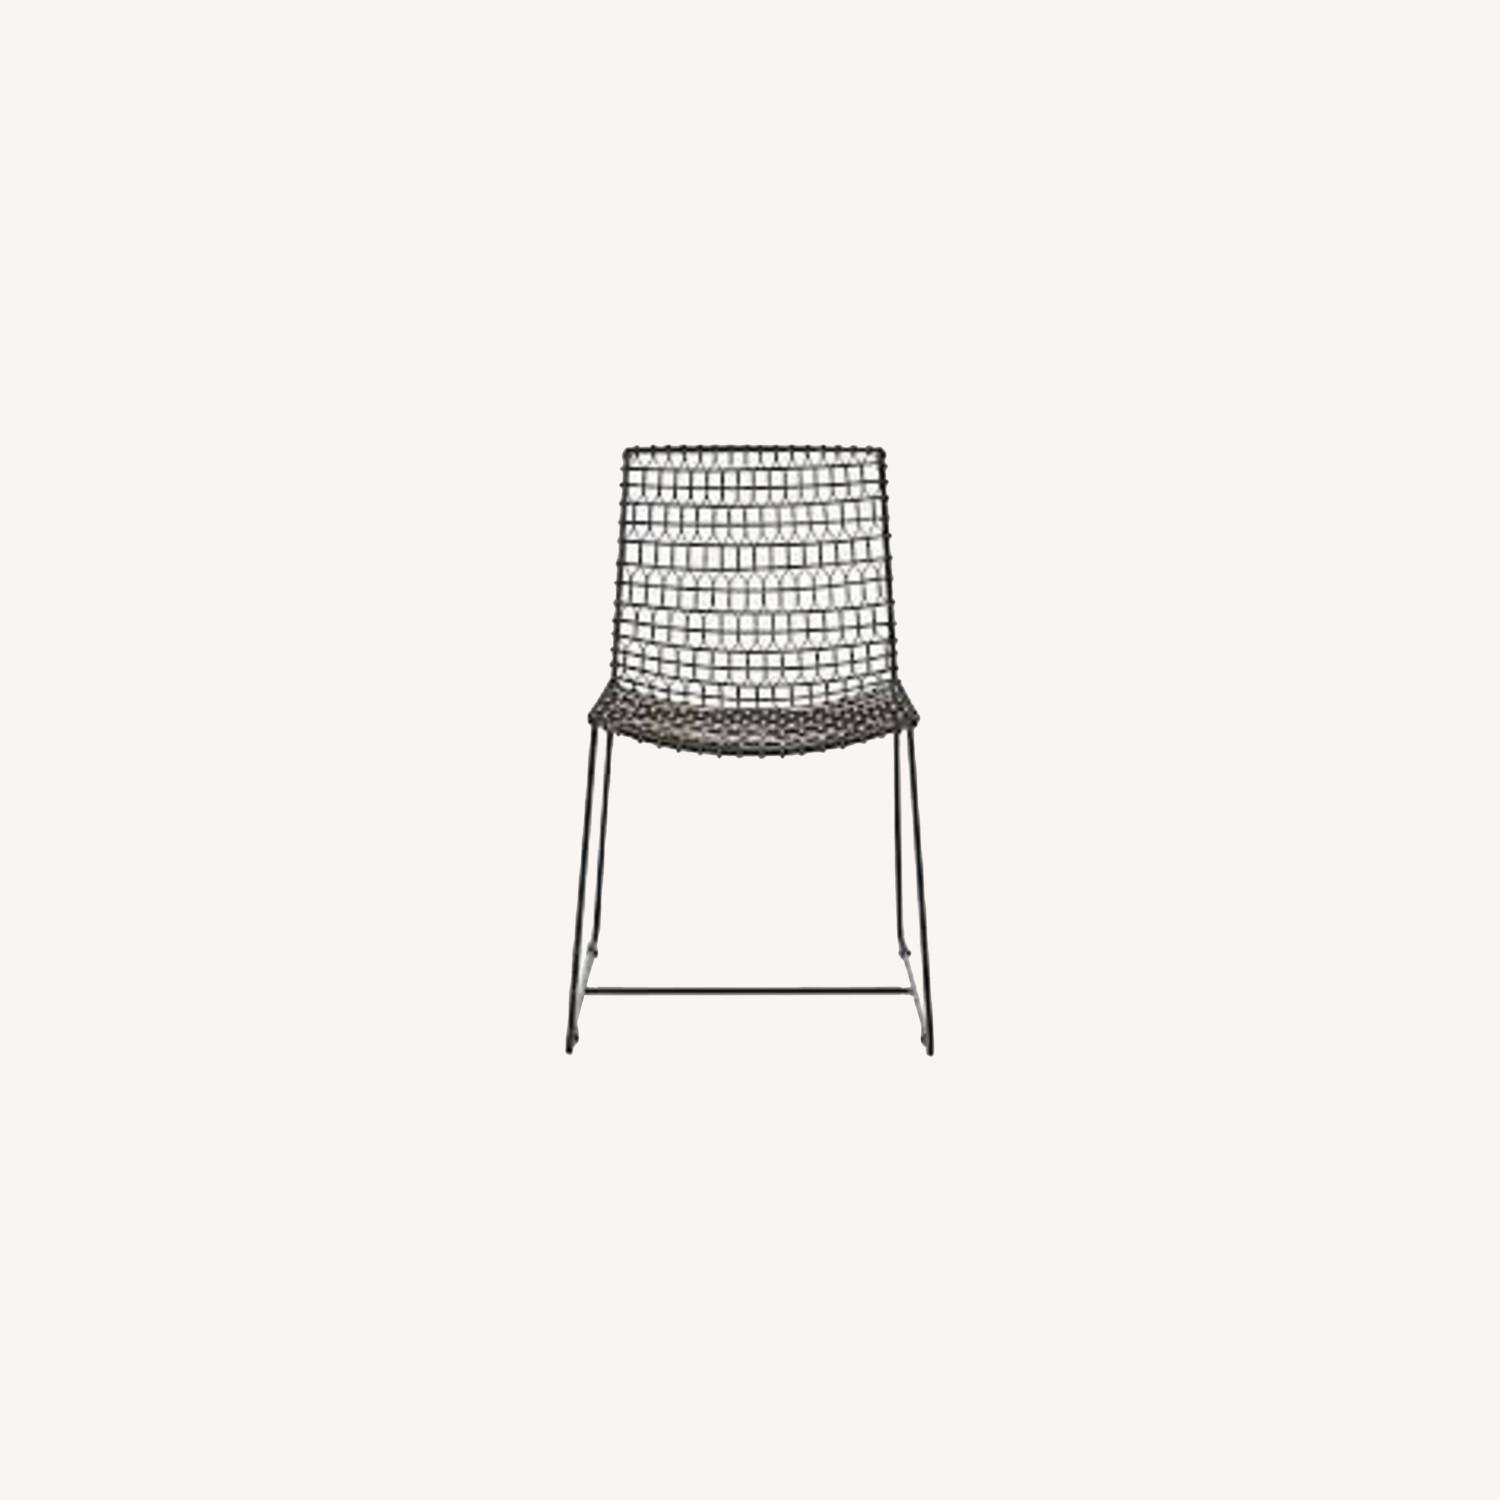 Crate & Barrel Metal Dining Chairs - image-0